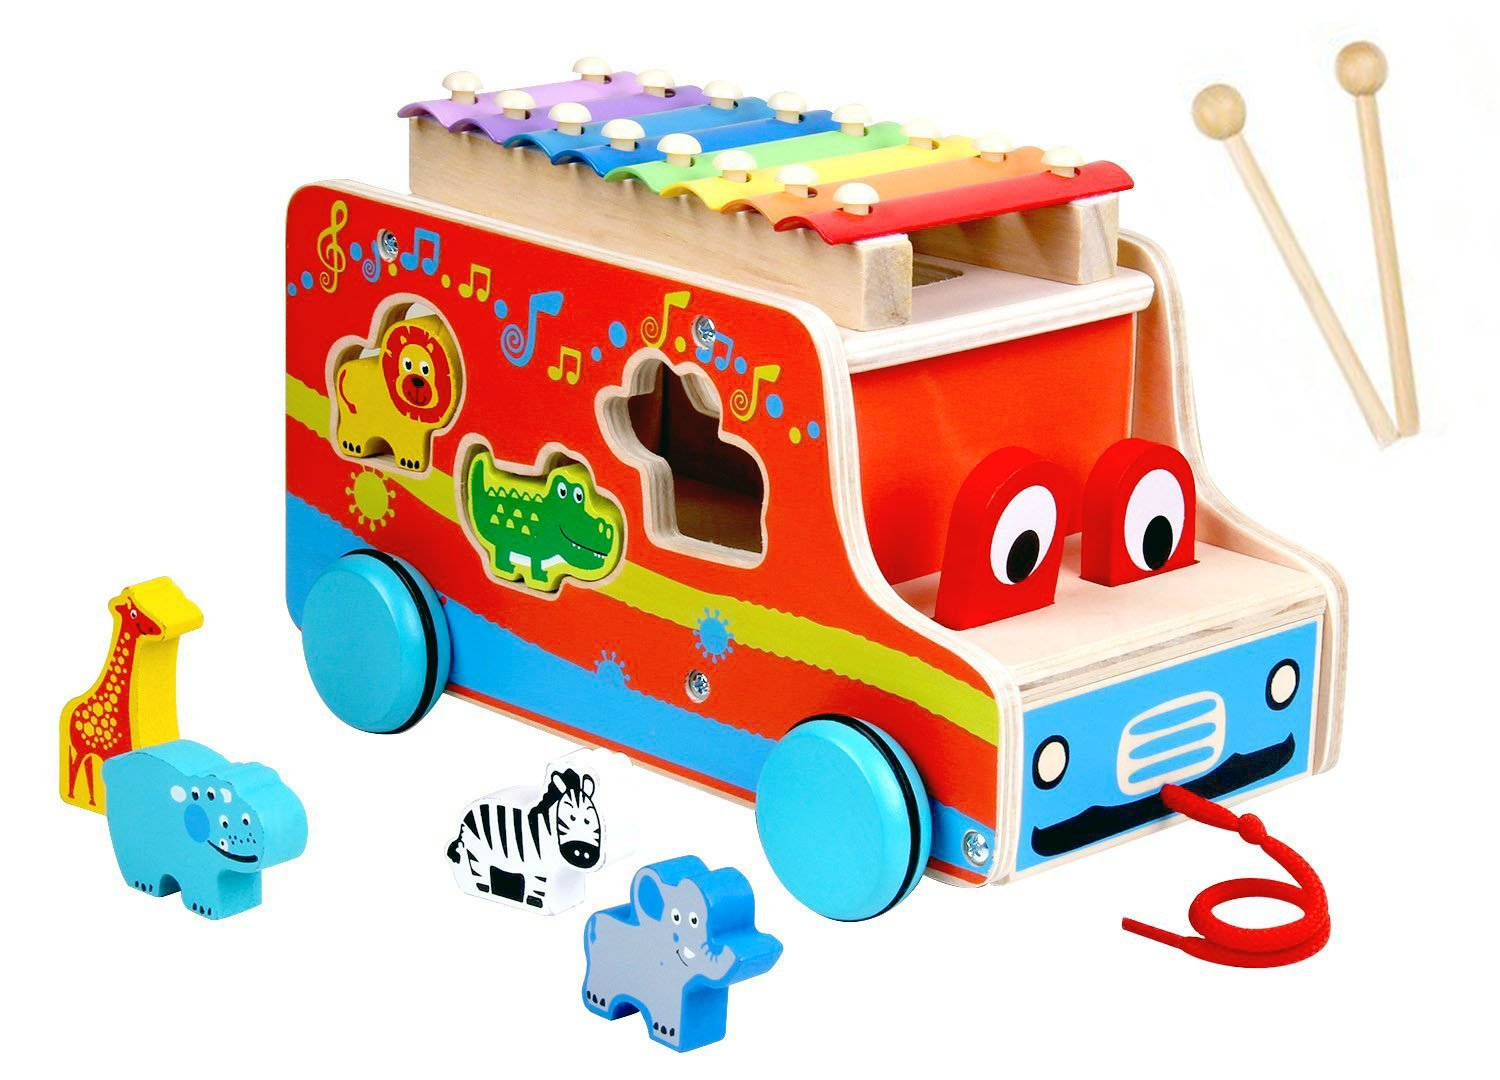 Pull Along Xylophone, Baby Push Pull Mallets Instrument Vehicle, Wooden Bus Toy, 3D Animal Shape Sorter Puzzle Gift, Educational Learning Toys for 1, 2, 3, 4 Year Olds Baby, Infants, Kids, Toddlers